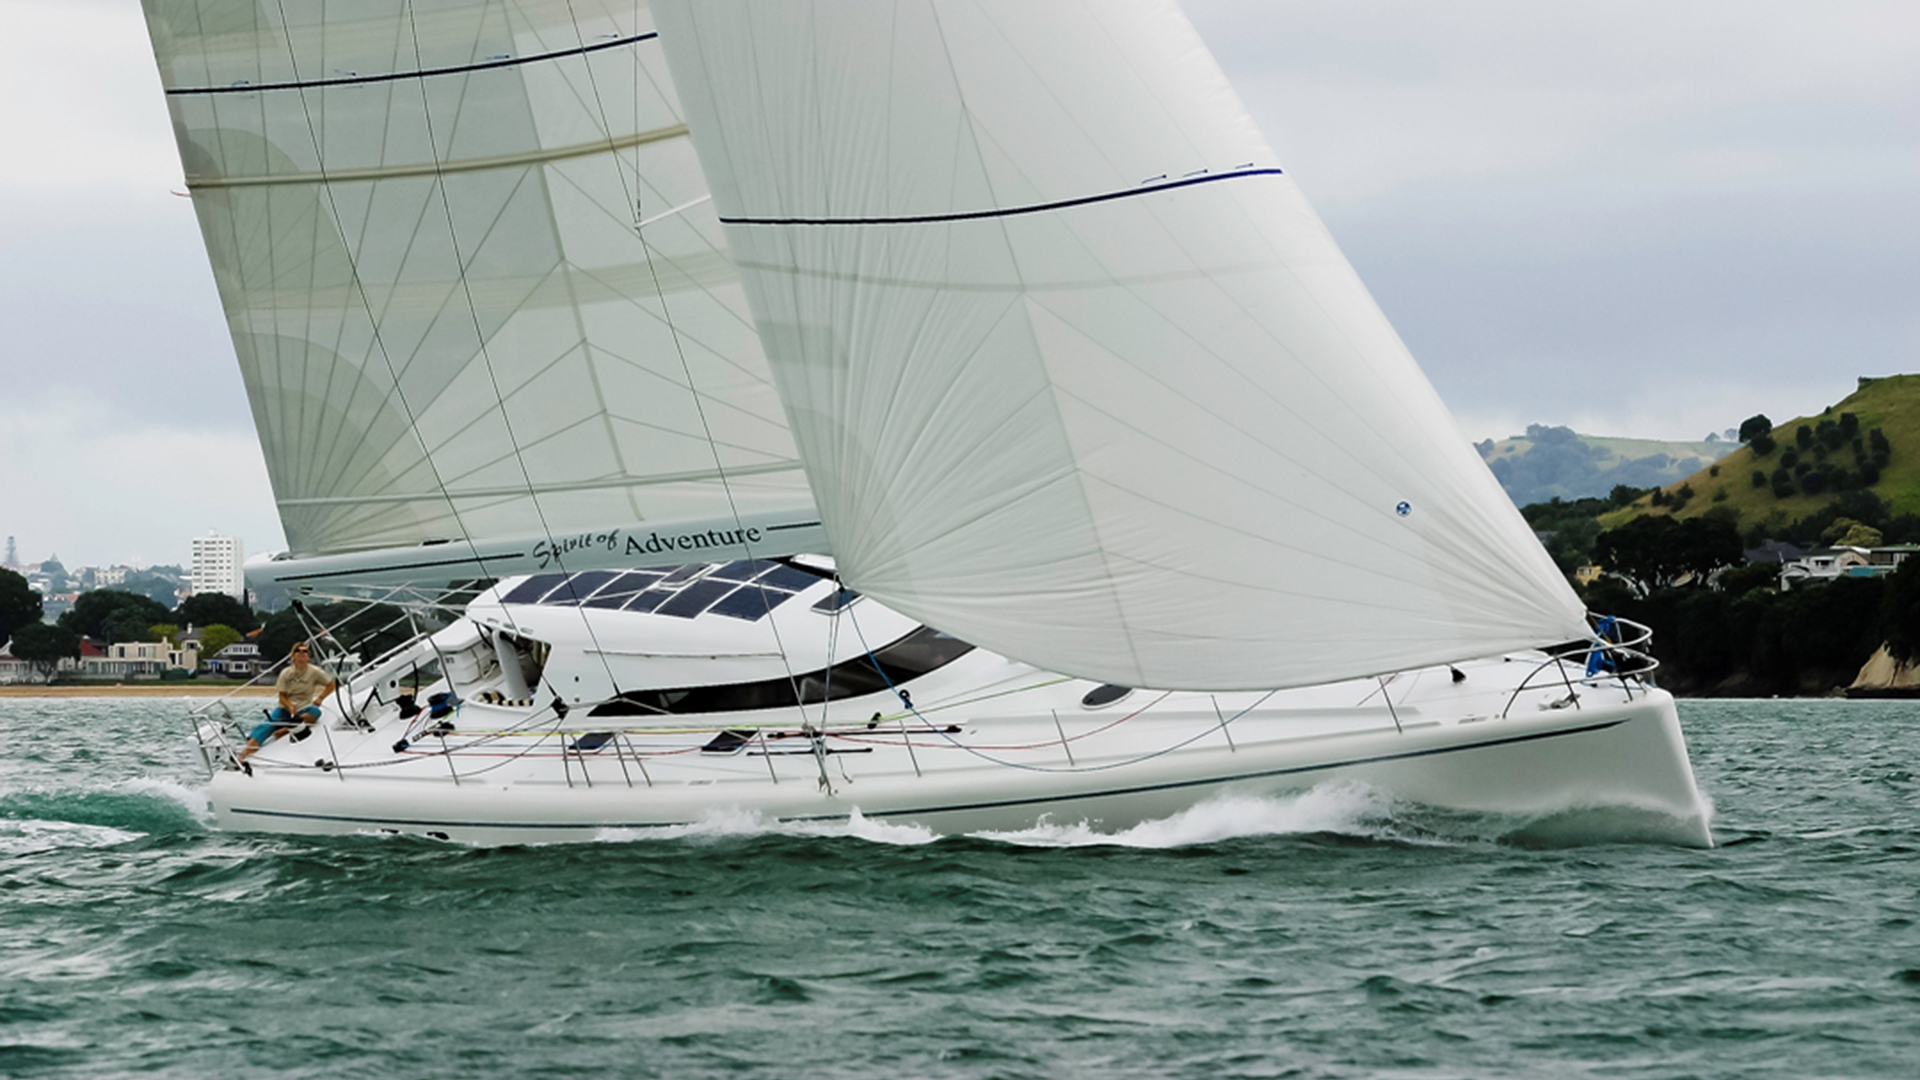 SOA was Owen Clarke Design's first performance lifting keel blue water custom cruising yacht design. She was built at Marten Yachts in New Zealand, in pre-preg carbon Nomex composite. OC were both the yacht's designers and project managers of this modern sailboat design